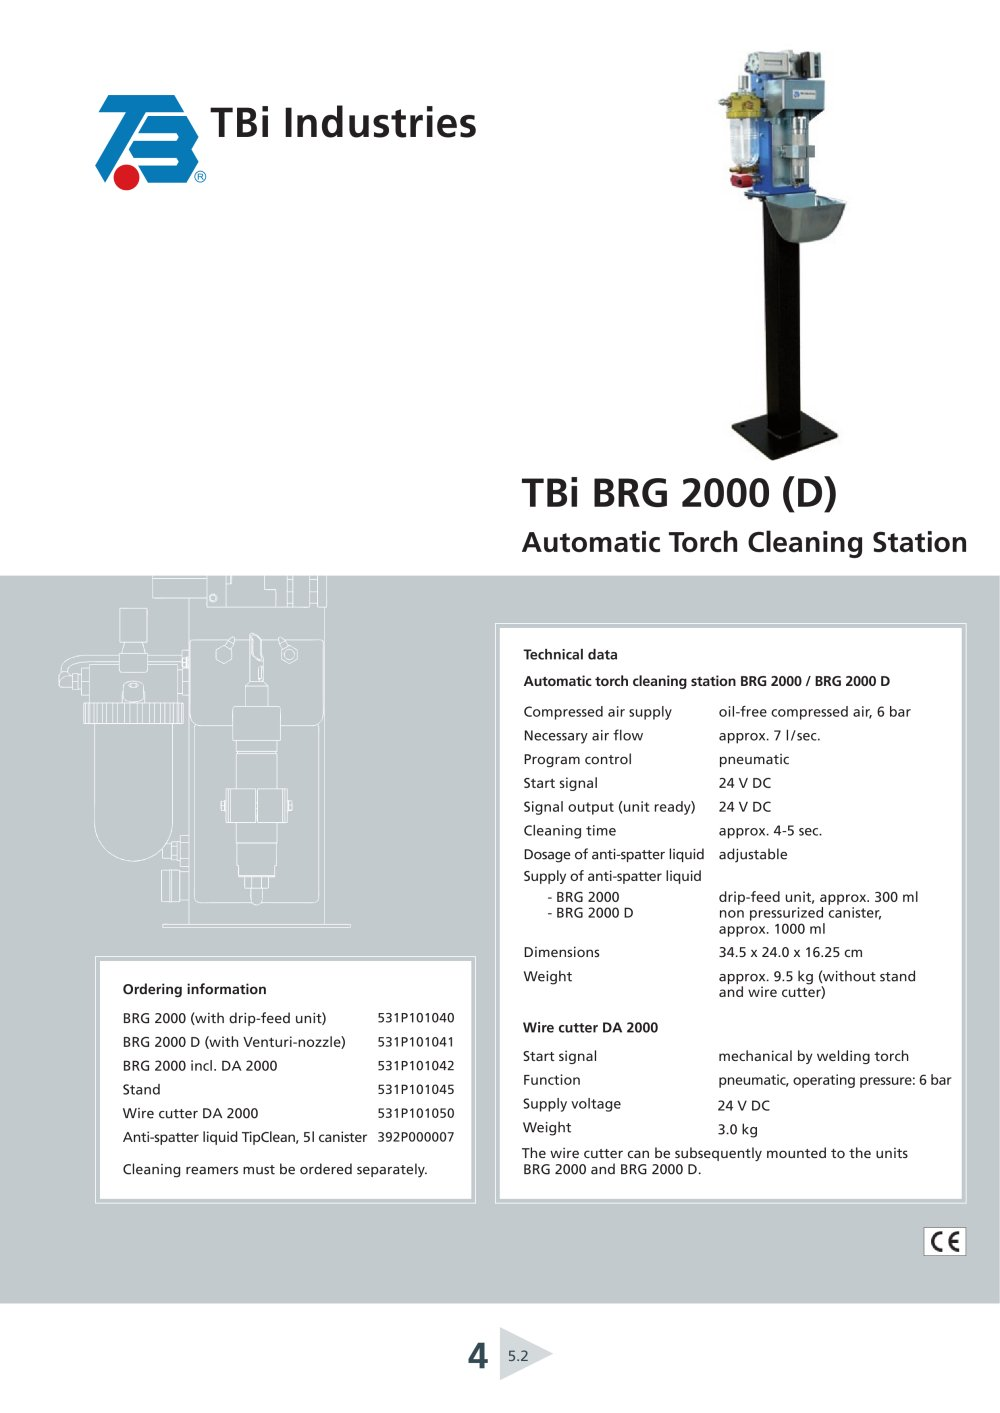 TBi BRG 2000 - TBi-Industries - PDF Catalogue | Technical ...